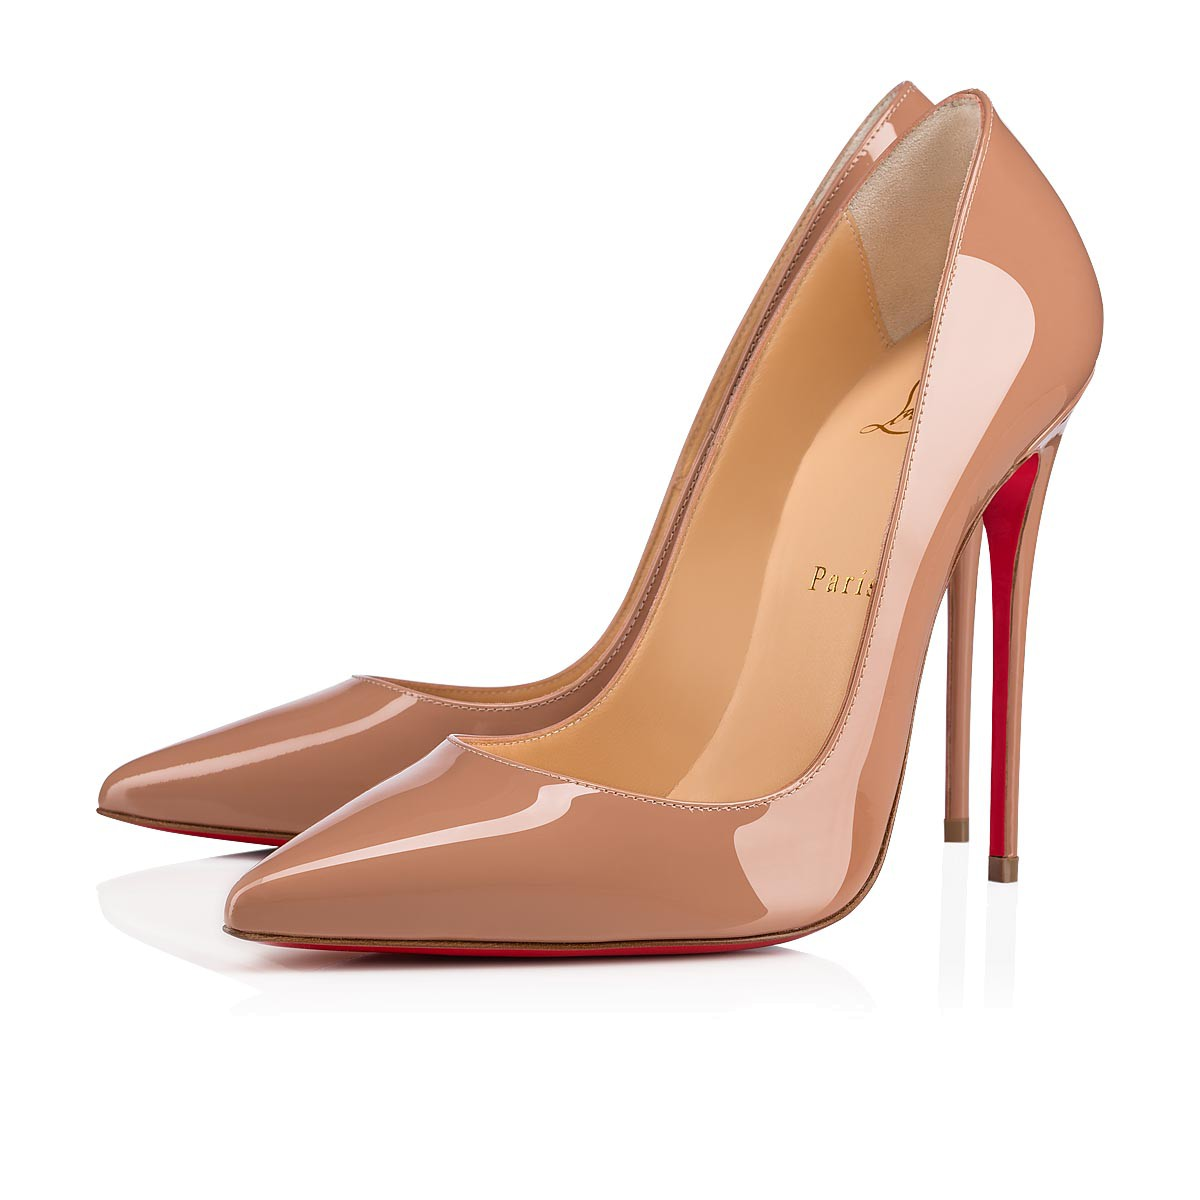 2e7e674da021 So Kate 120 Nude Patent Leather - Women Shoes - Christian Louboutin